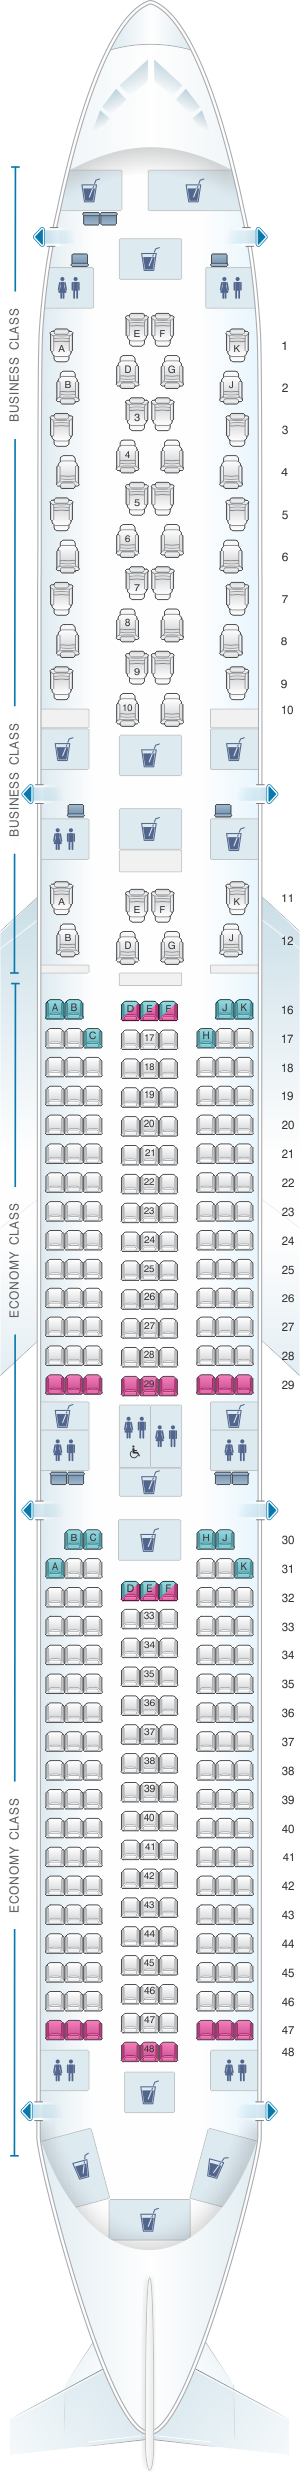 Seat map for Qatar Airways Airbus A350 1000